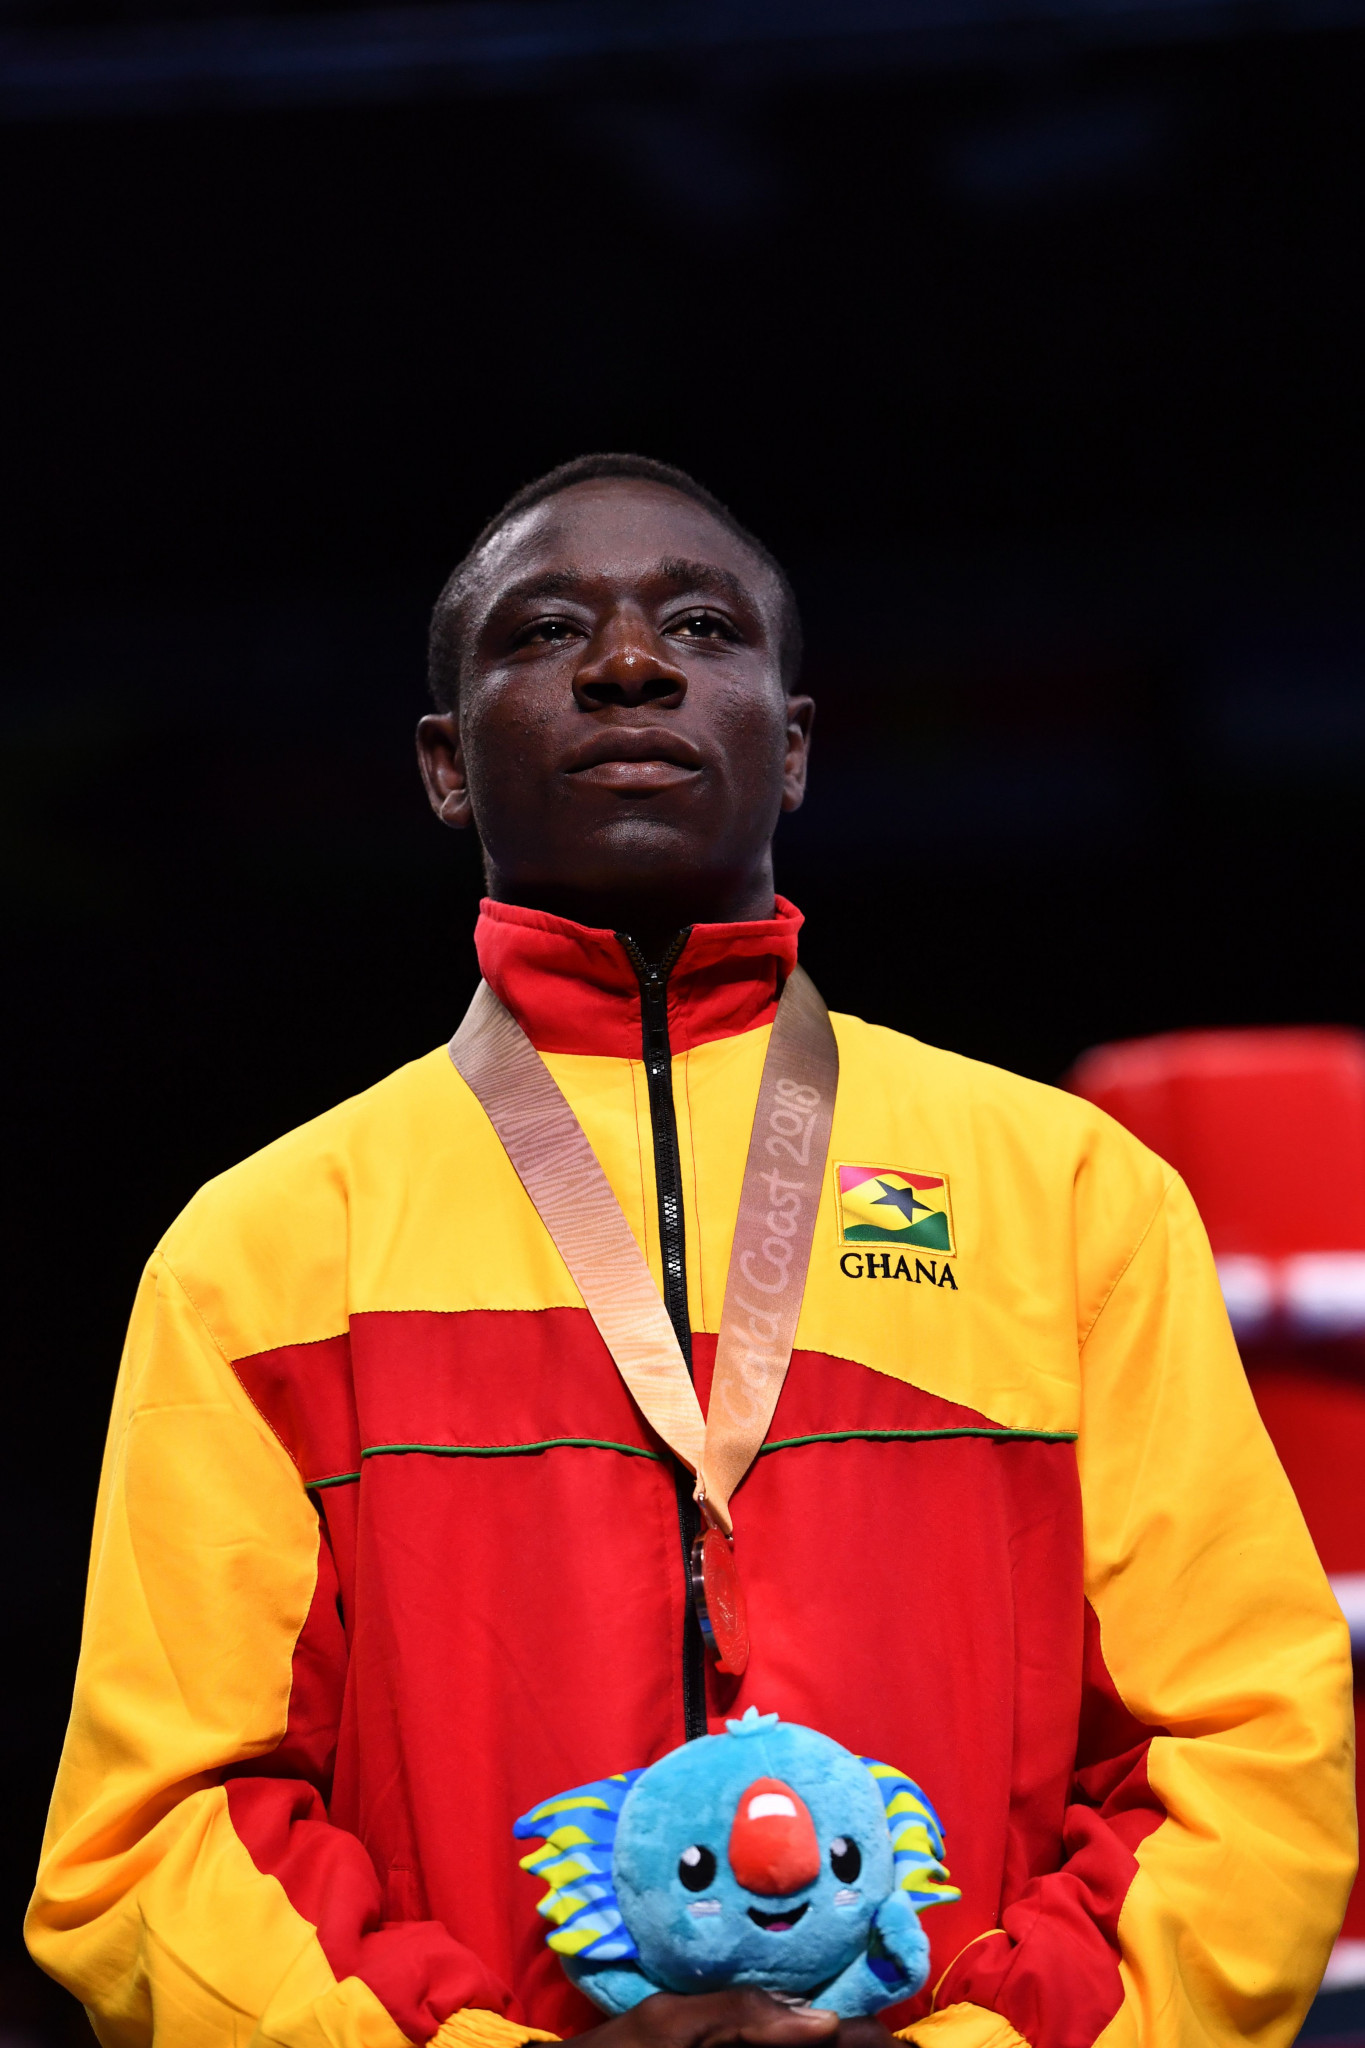 Boxer Jessie Lartey won aCommonwealth Games bronze at Gold Coast 2018 - the country's only medal of an event overshadowed by a row over allegations of a visa scam involving Government officials ©Getty Images